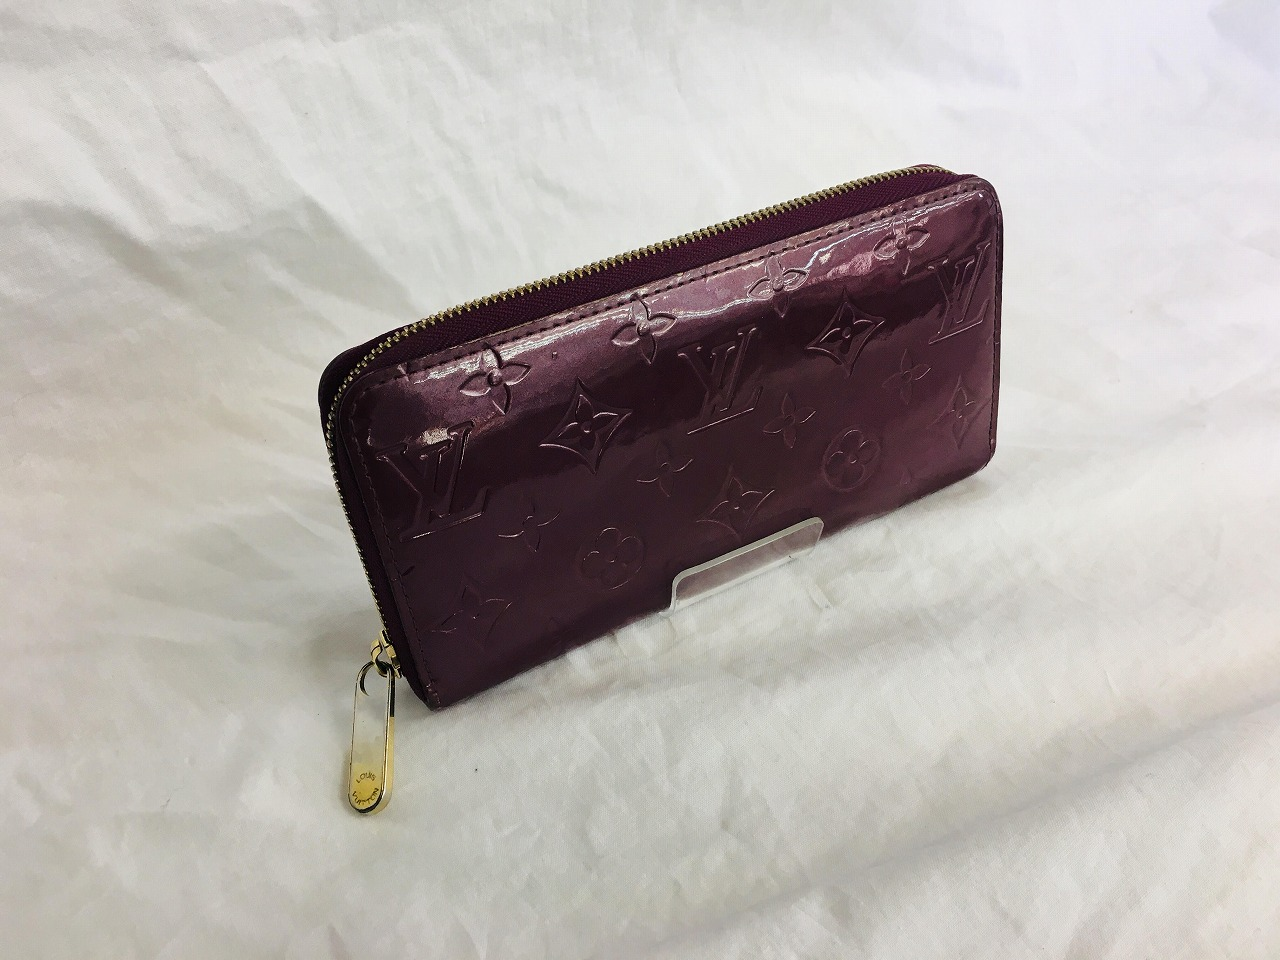 new concept 3e1b2 f54db LOUIS VUITTON(ルイヴィトン)ヴェルニの長財布展示販売中 ...